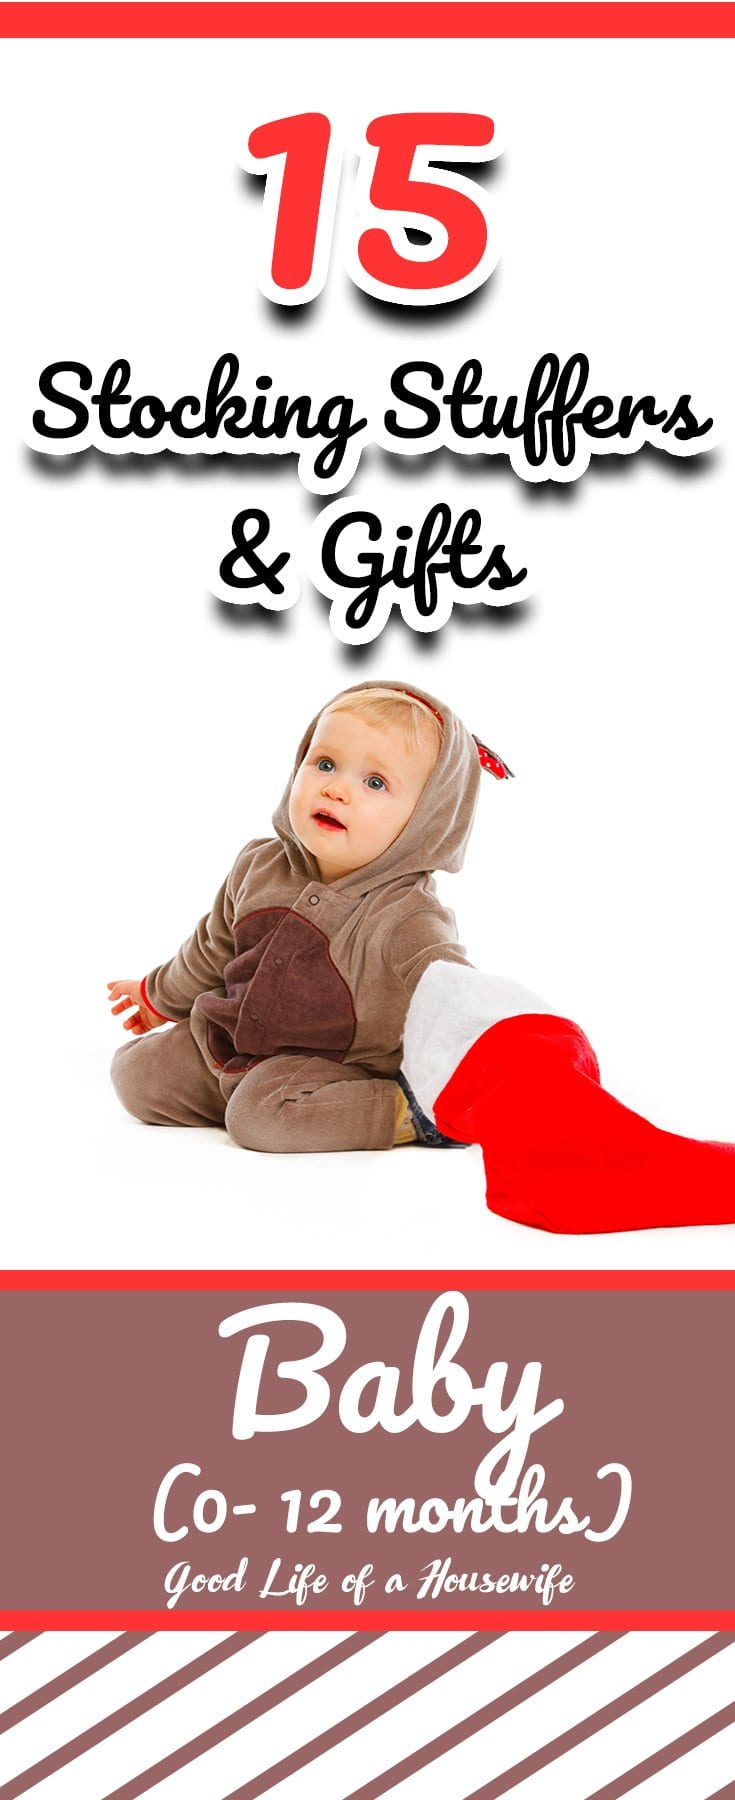 What gifts and stocking stuffers do you get for a baby? Here is a list of items to make your shopping easier. Here are the best gifts for a baby 0-12 months| Best Gifts and Stocking Stuffers for a Baby at Christmas | Christmas gifts for babies| Stocking Stuffers for Babies